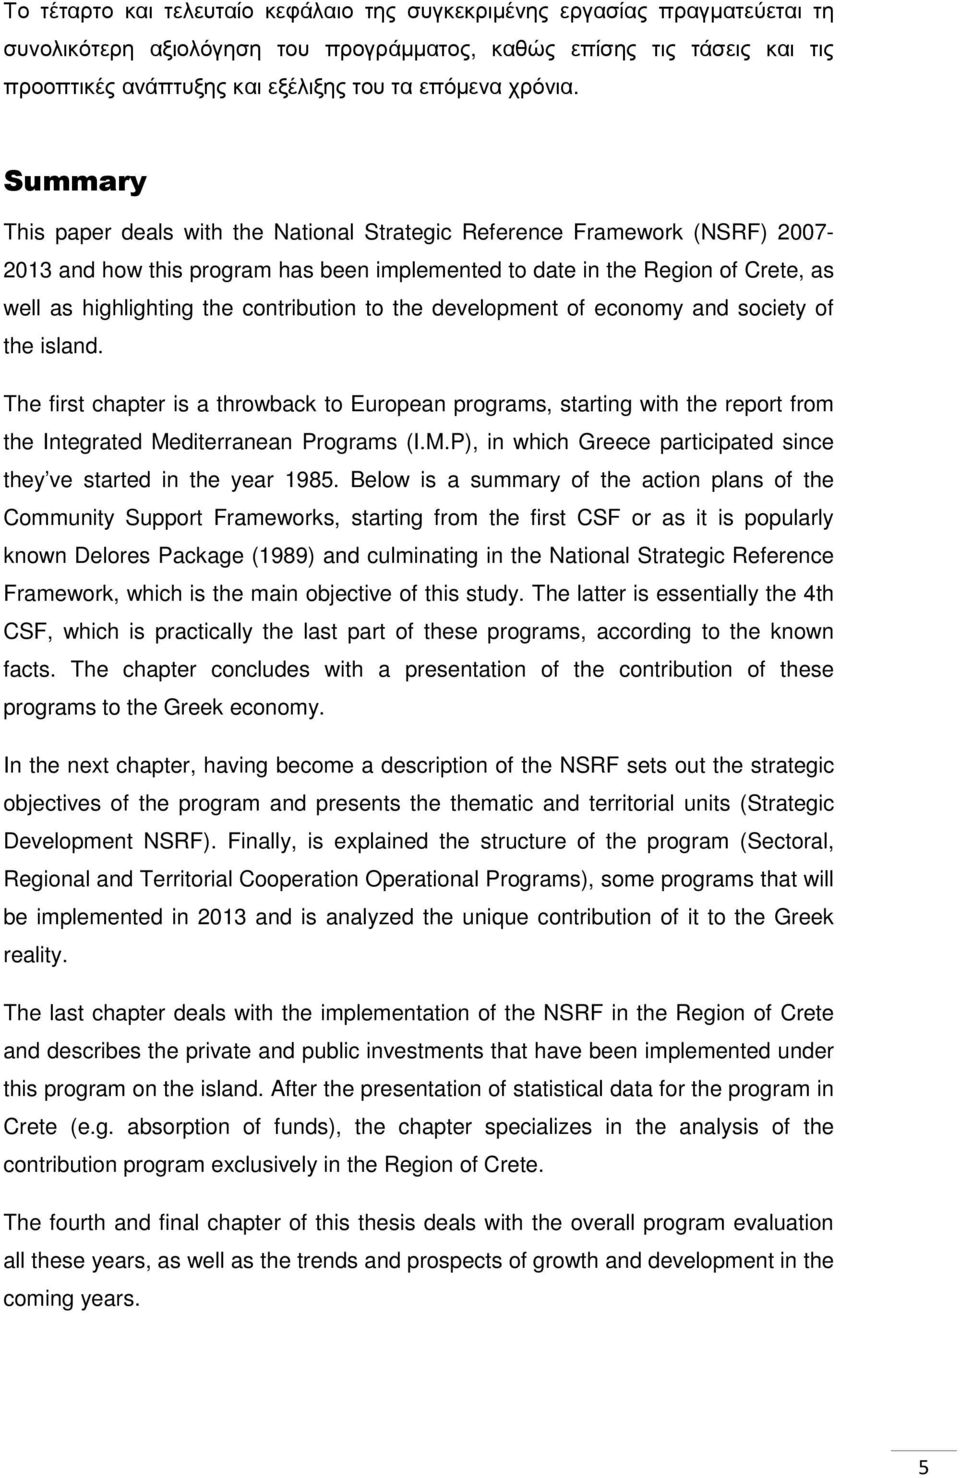 Summary This paper deals with the National Strategic Reference Framework (NSRF) 2007-2013 and how this program has been implemented to date in the Region of Crete, as well as highlighting the